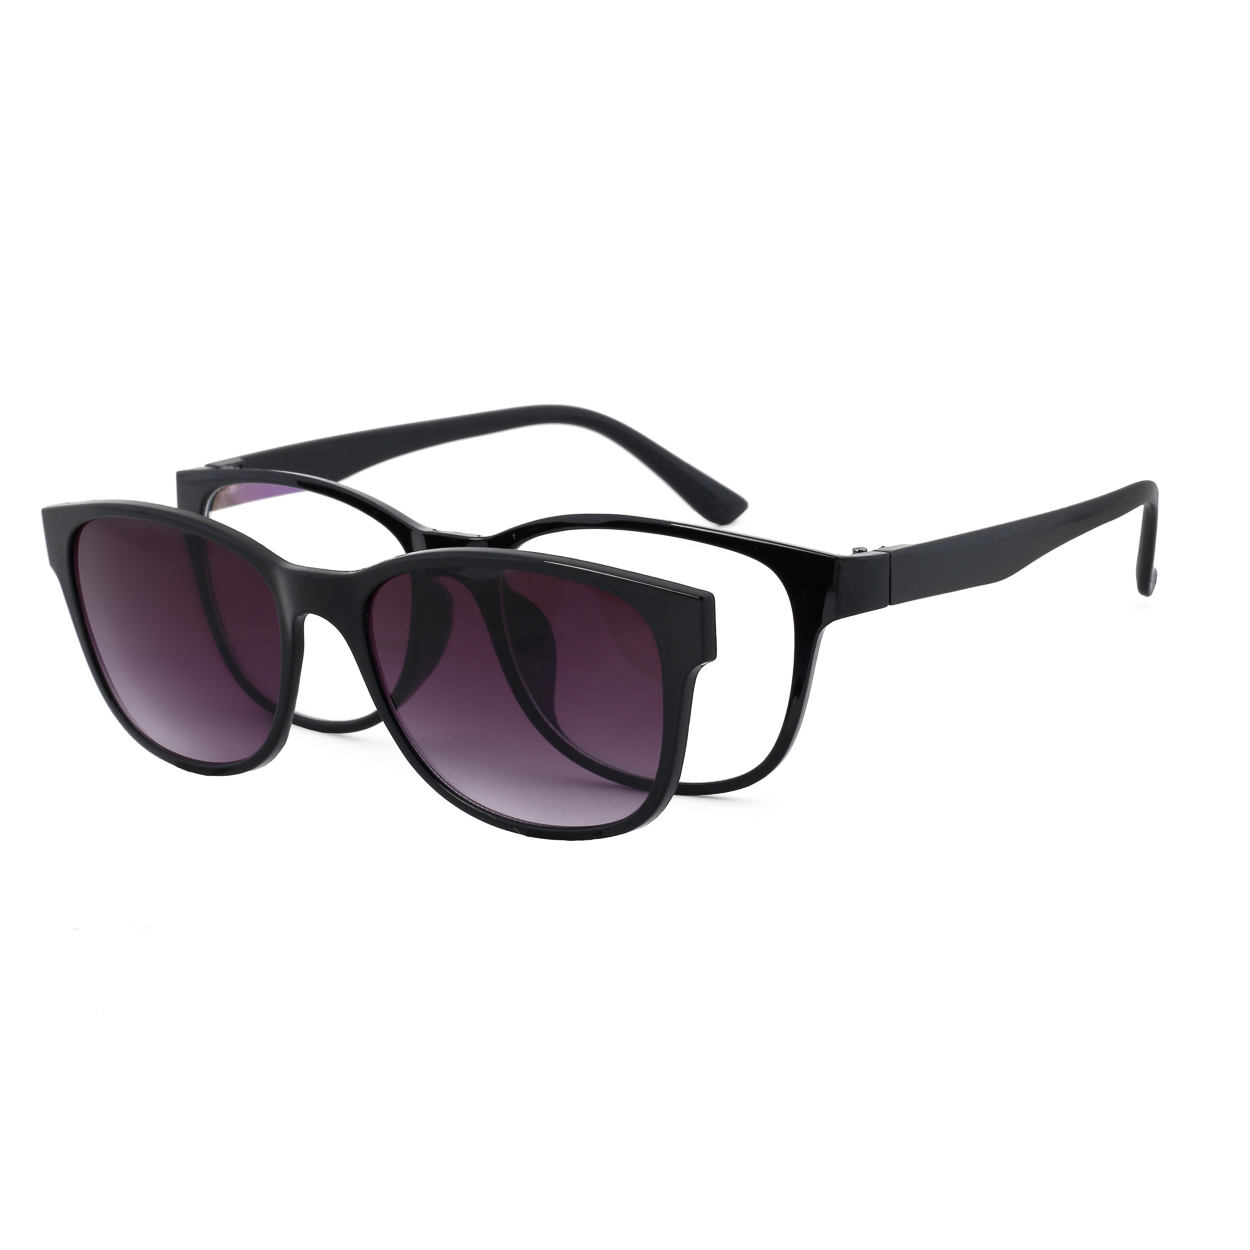 6af9a575eb7 Royal Son UV Protected Magnate Sunglasses For Men And Women ...